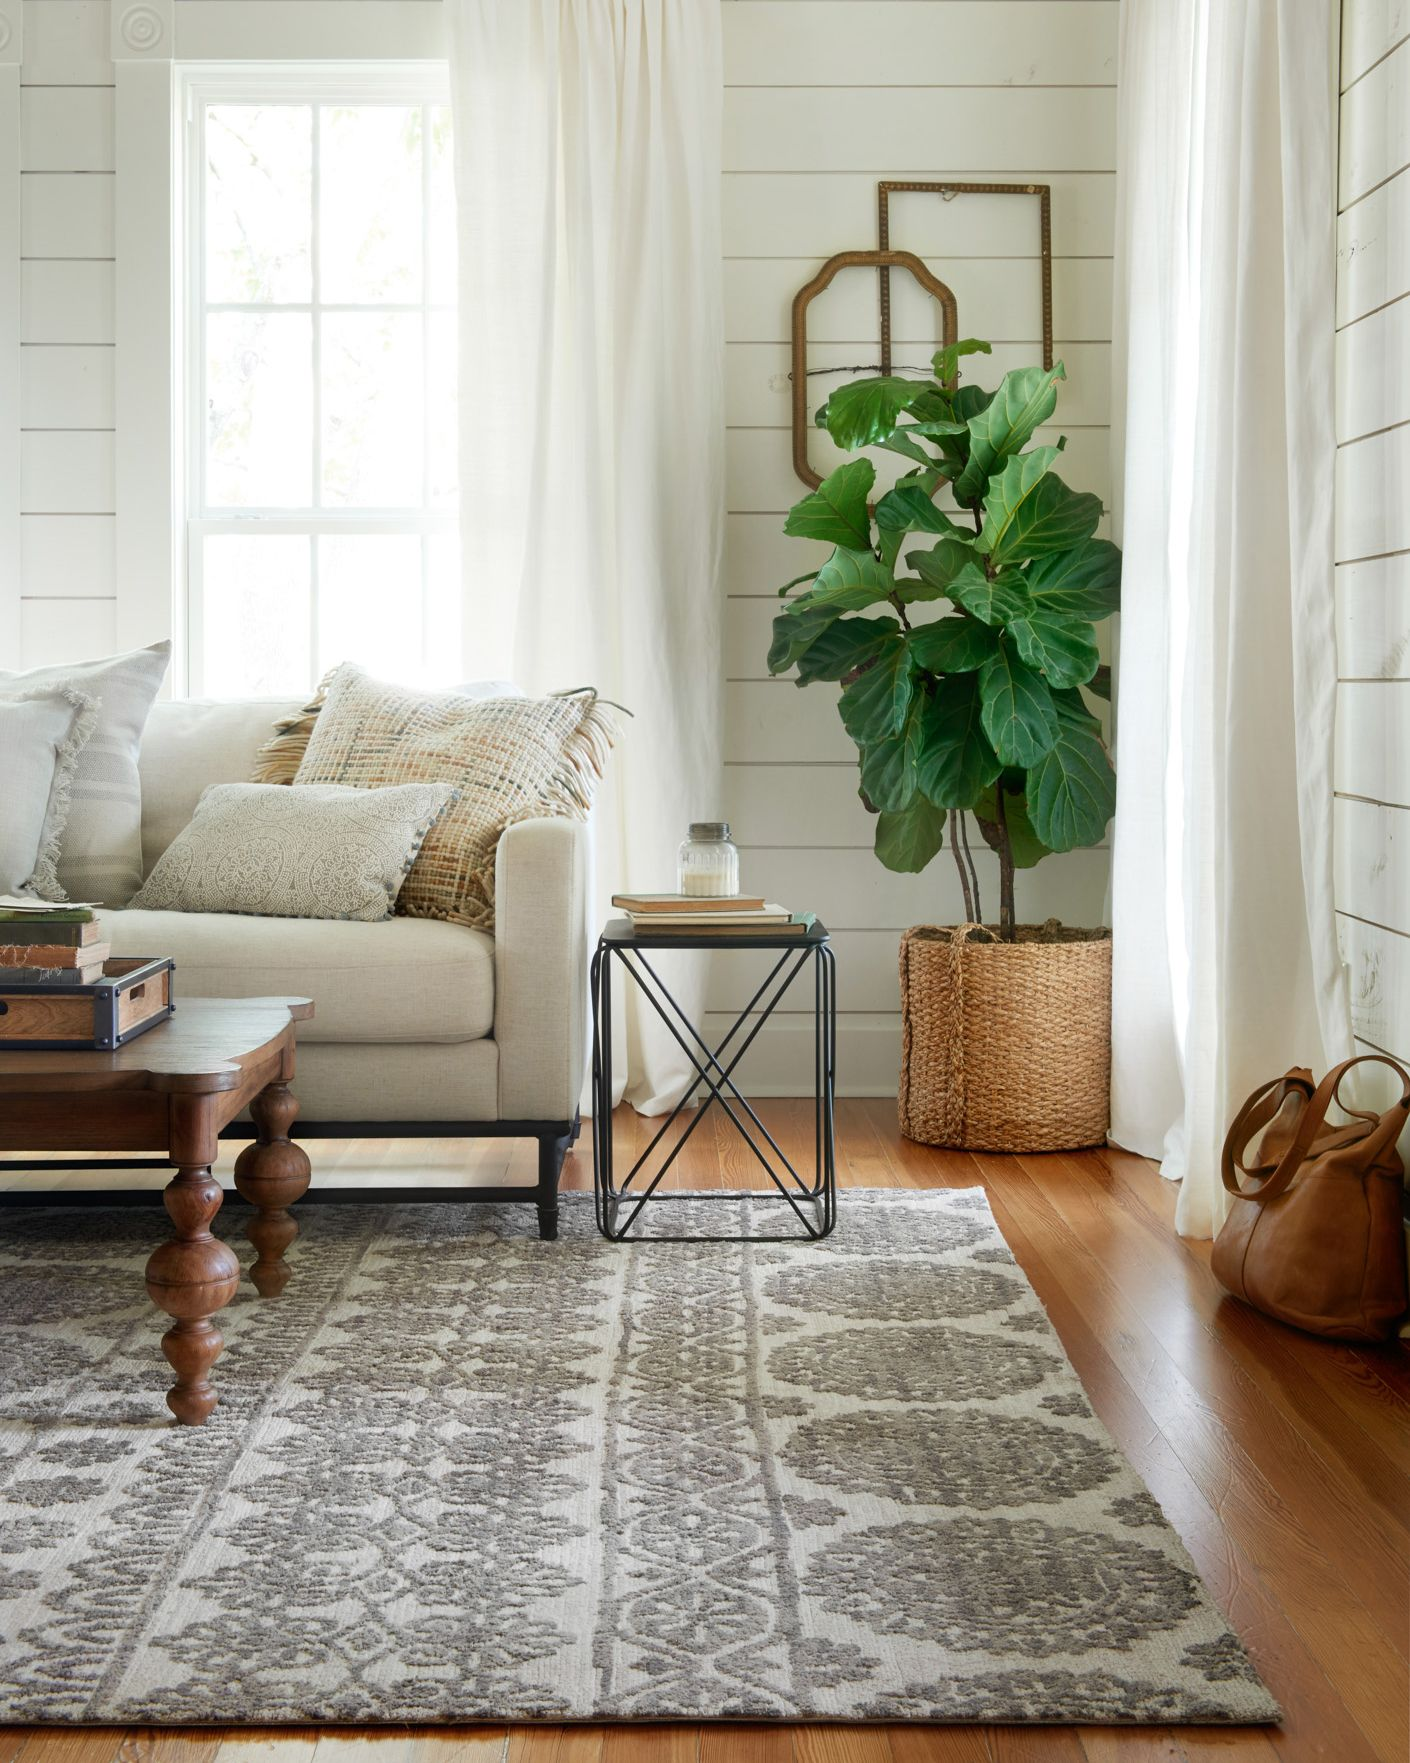 How to Paint a Herringbone Wall Joanna gaines living